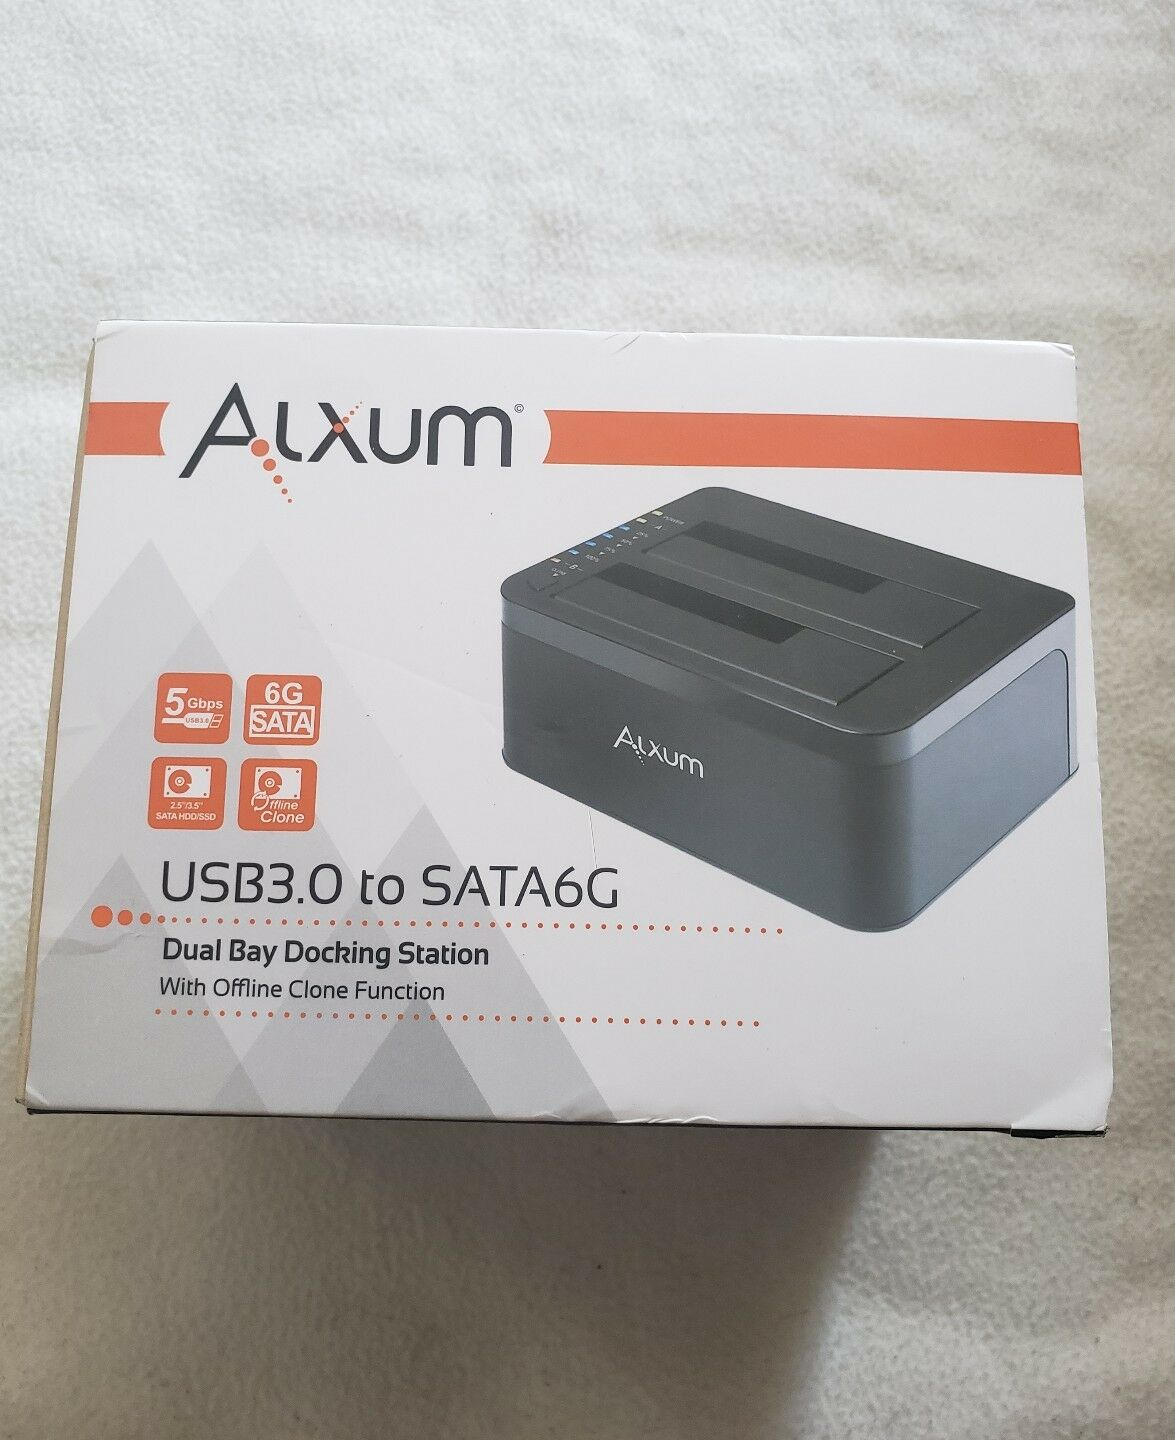 Support Uasp Alxum Usb 30 To Sata Dual Bay External Hard Drive Orico 6228us3 C 2bay Docking Harddisk Norton Secured Powered By Verisign